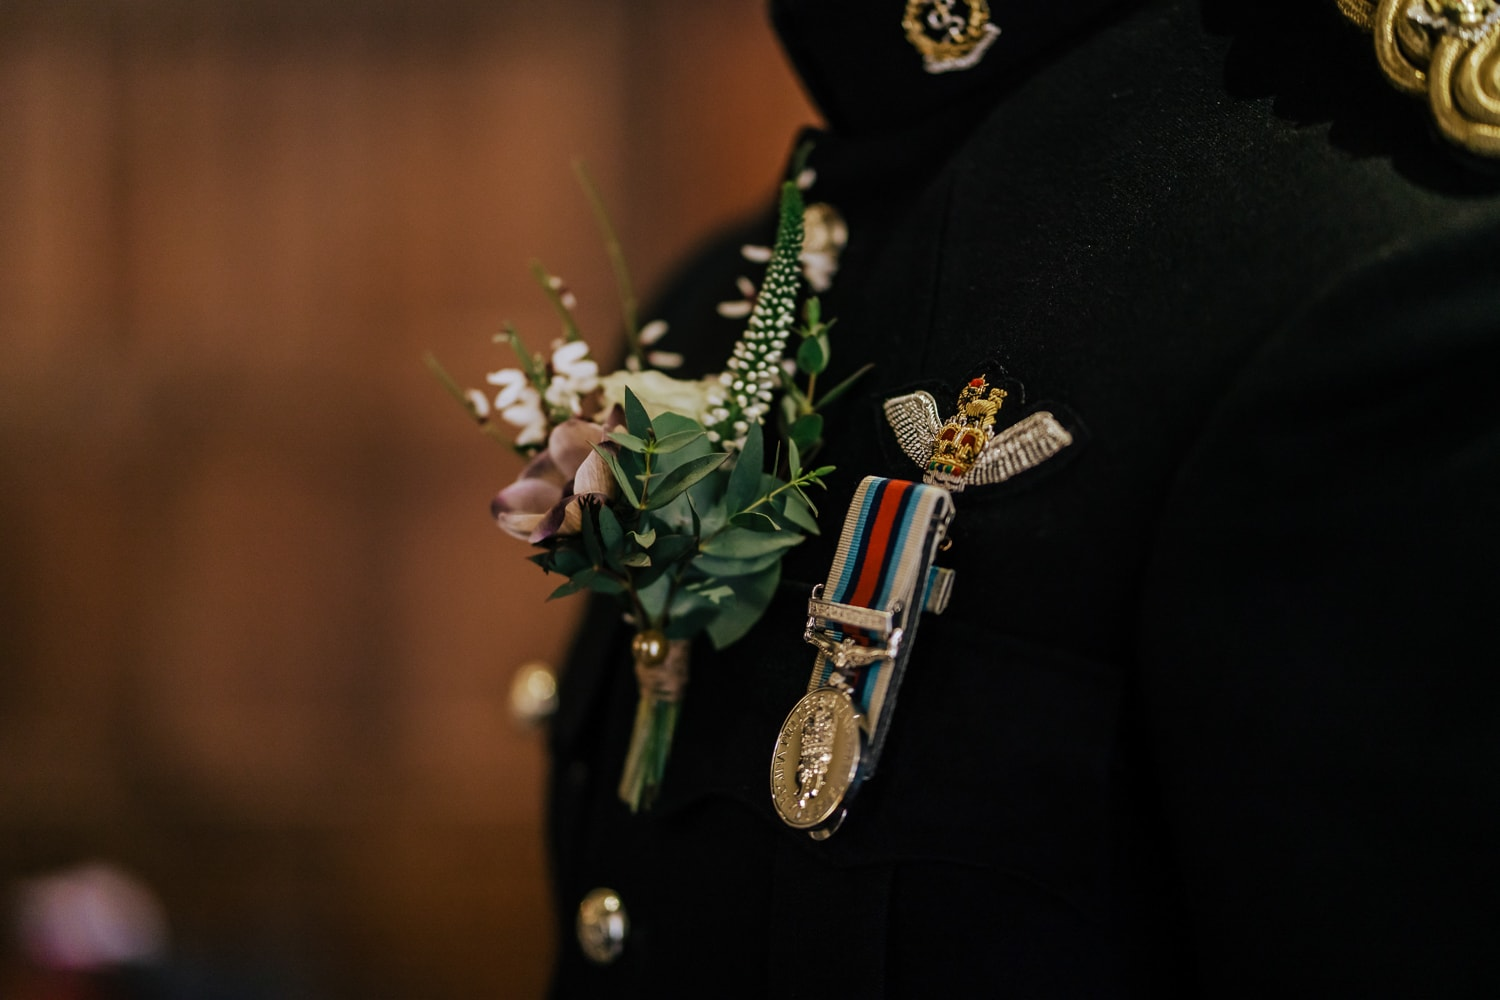 boutonniere next medal on military wedding uniform